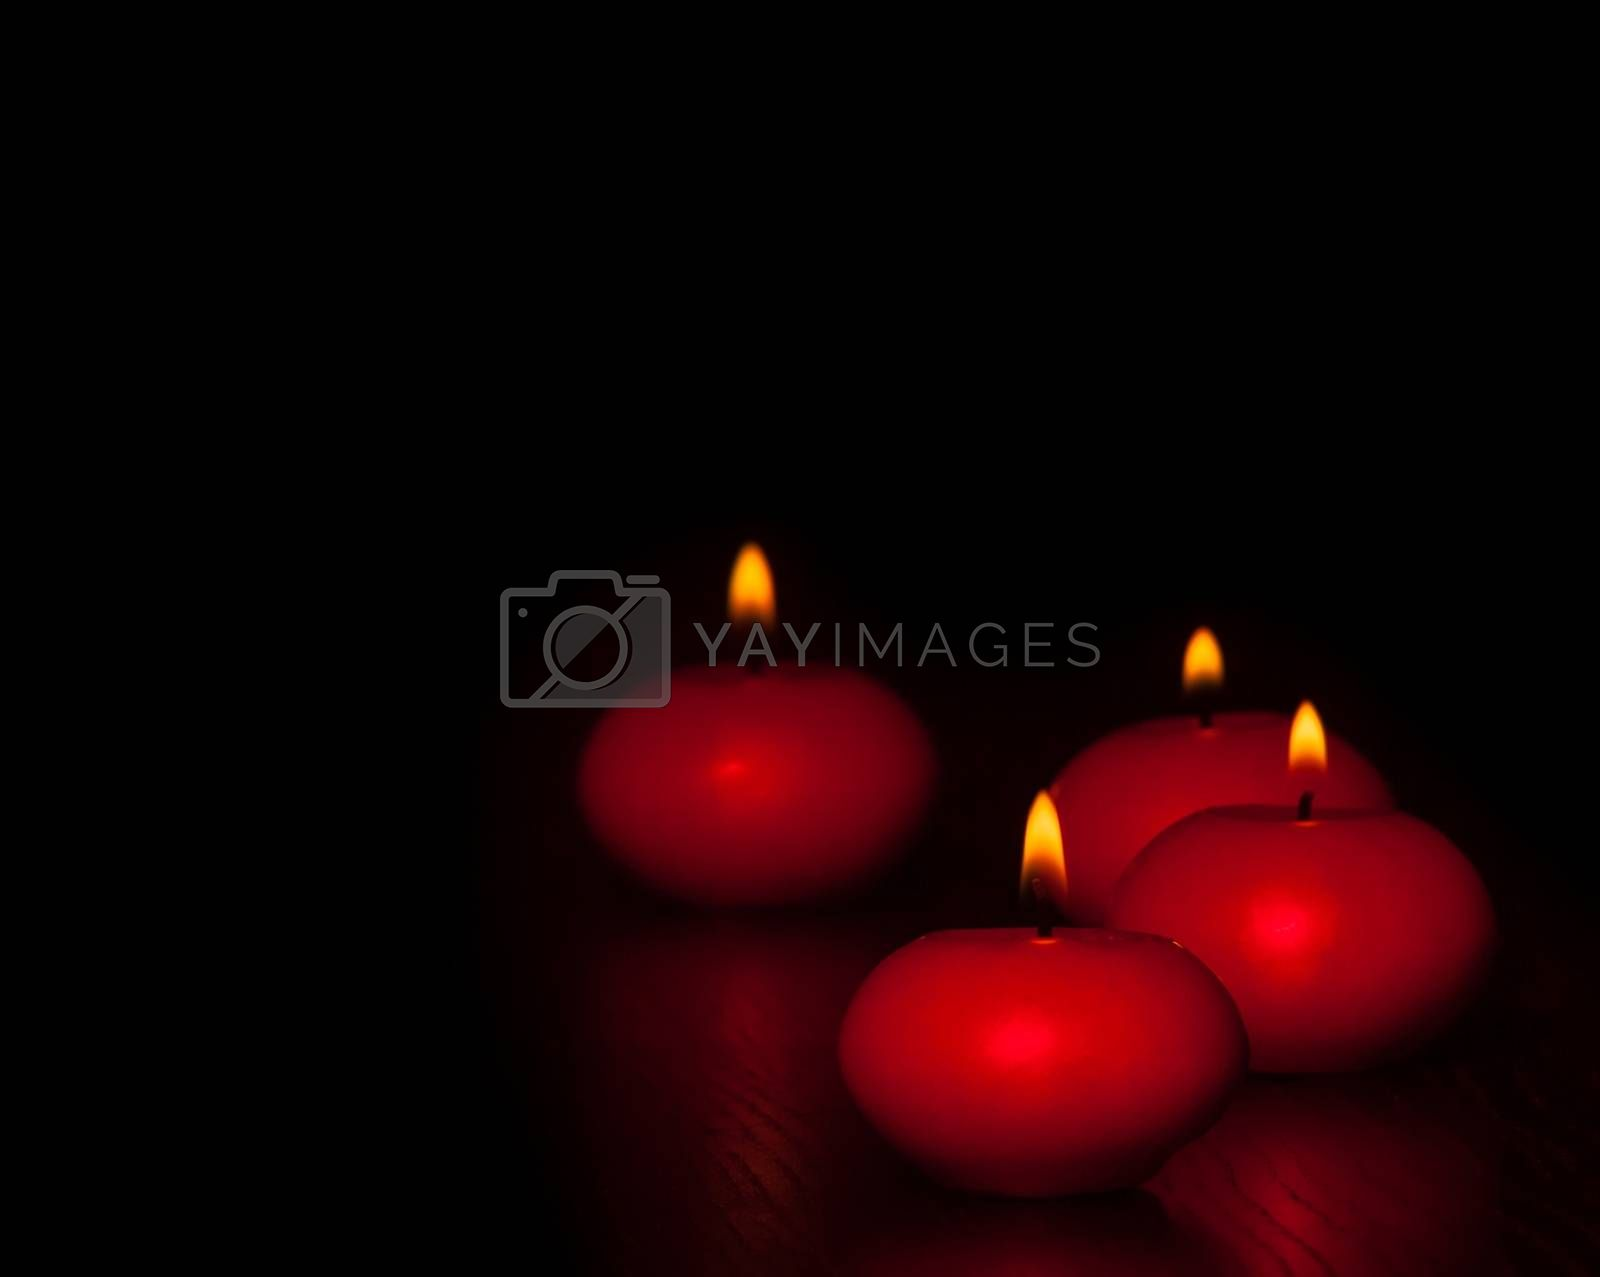 red candles with flame on wood and black background, dark atmospere by donfiore